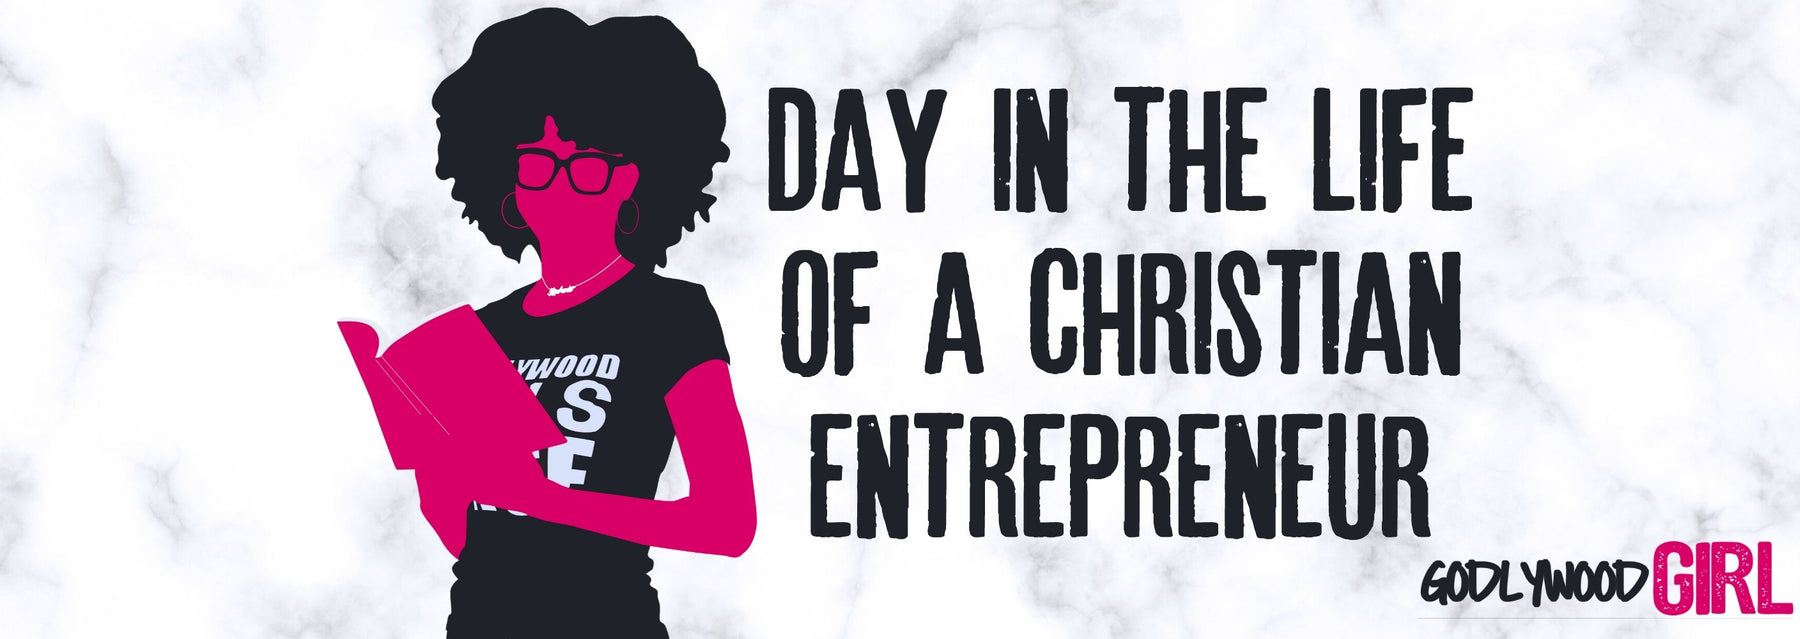 ENTREPRENEUR LIFE VLOG (DAY IN A LIFE OF A CHRISTIAN ENTREPRENEUR) | Godlywood Girl Vlog #091